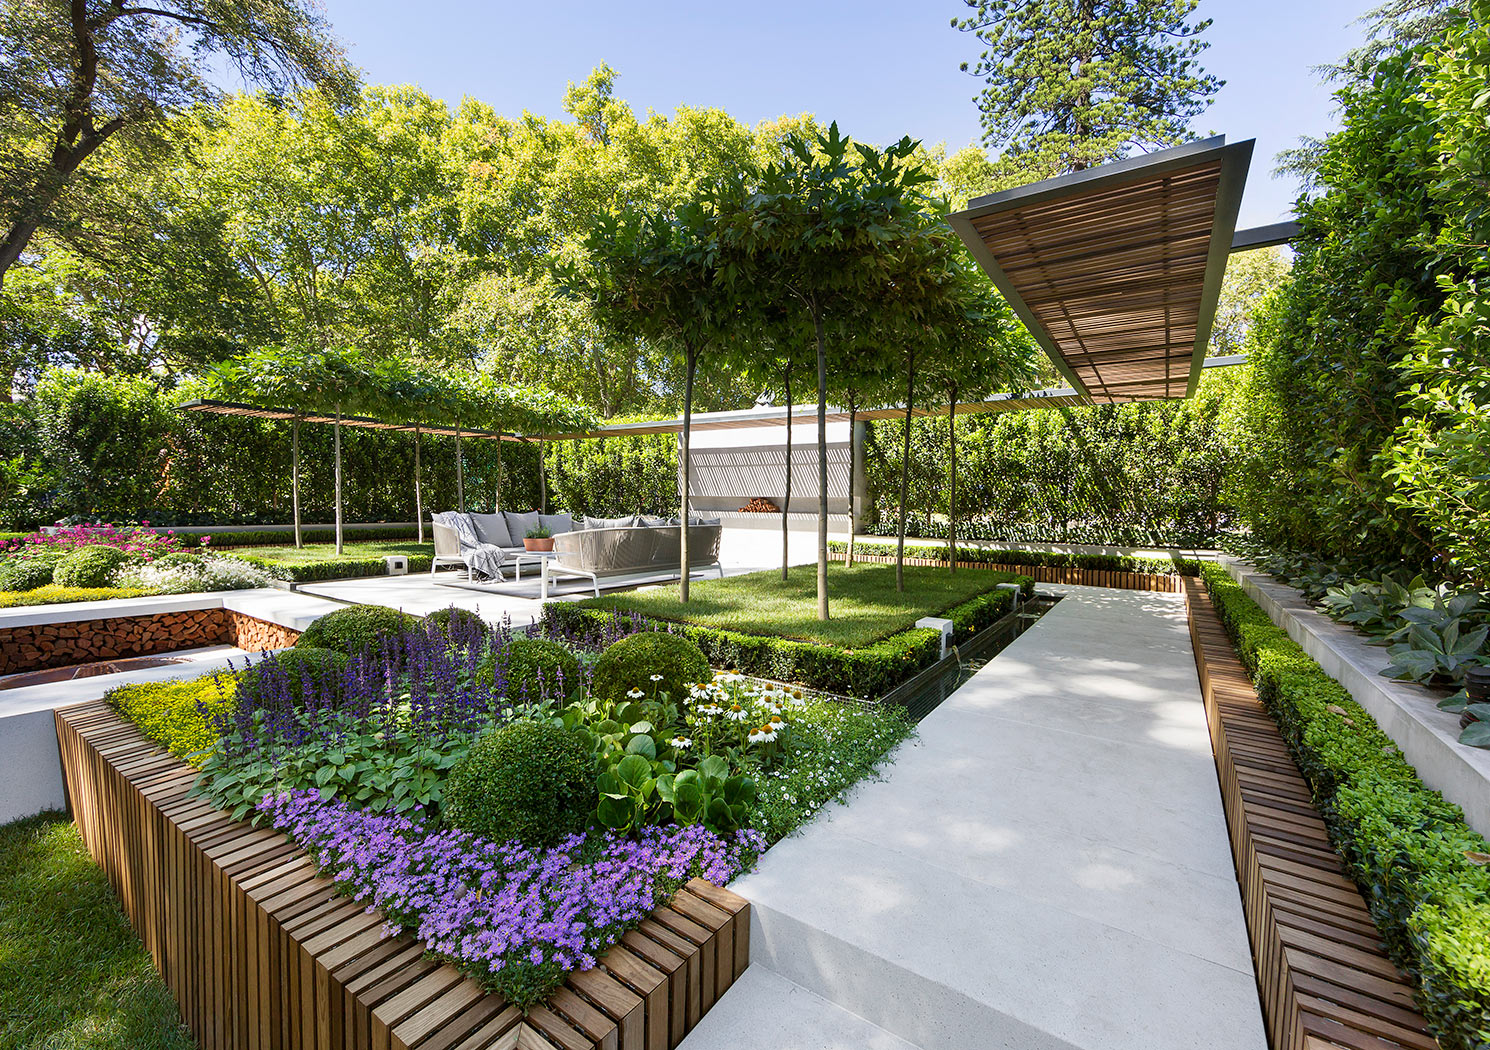 Landscape garden designer melbourne nathan burkett design for Outdoor landscape design